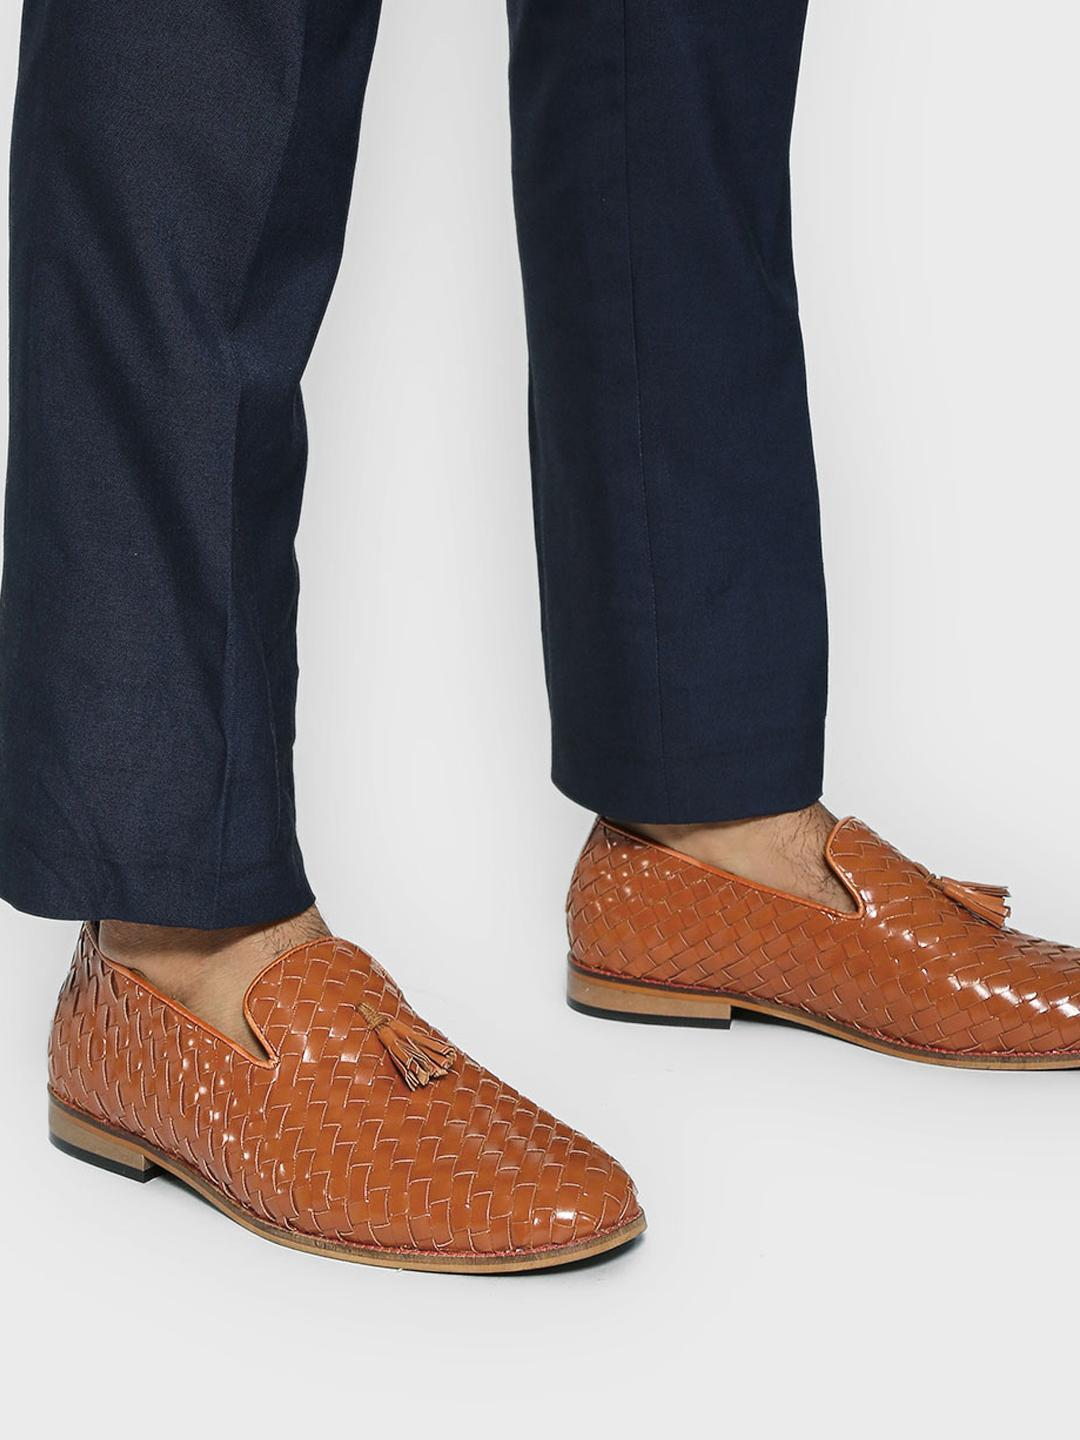 Bolt Of The Good Stuff Brown Handwoven Tassel Loafers 1